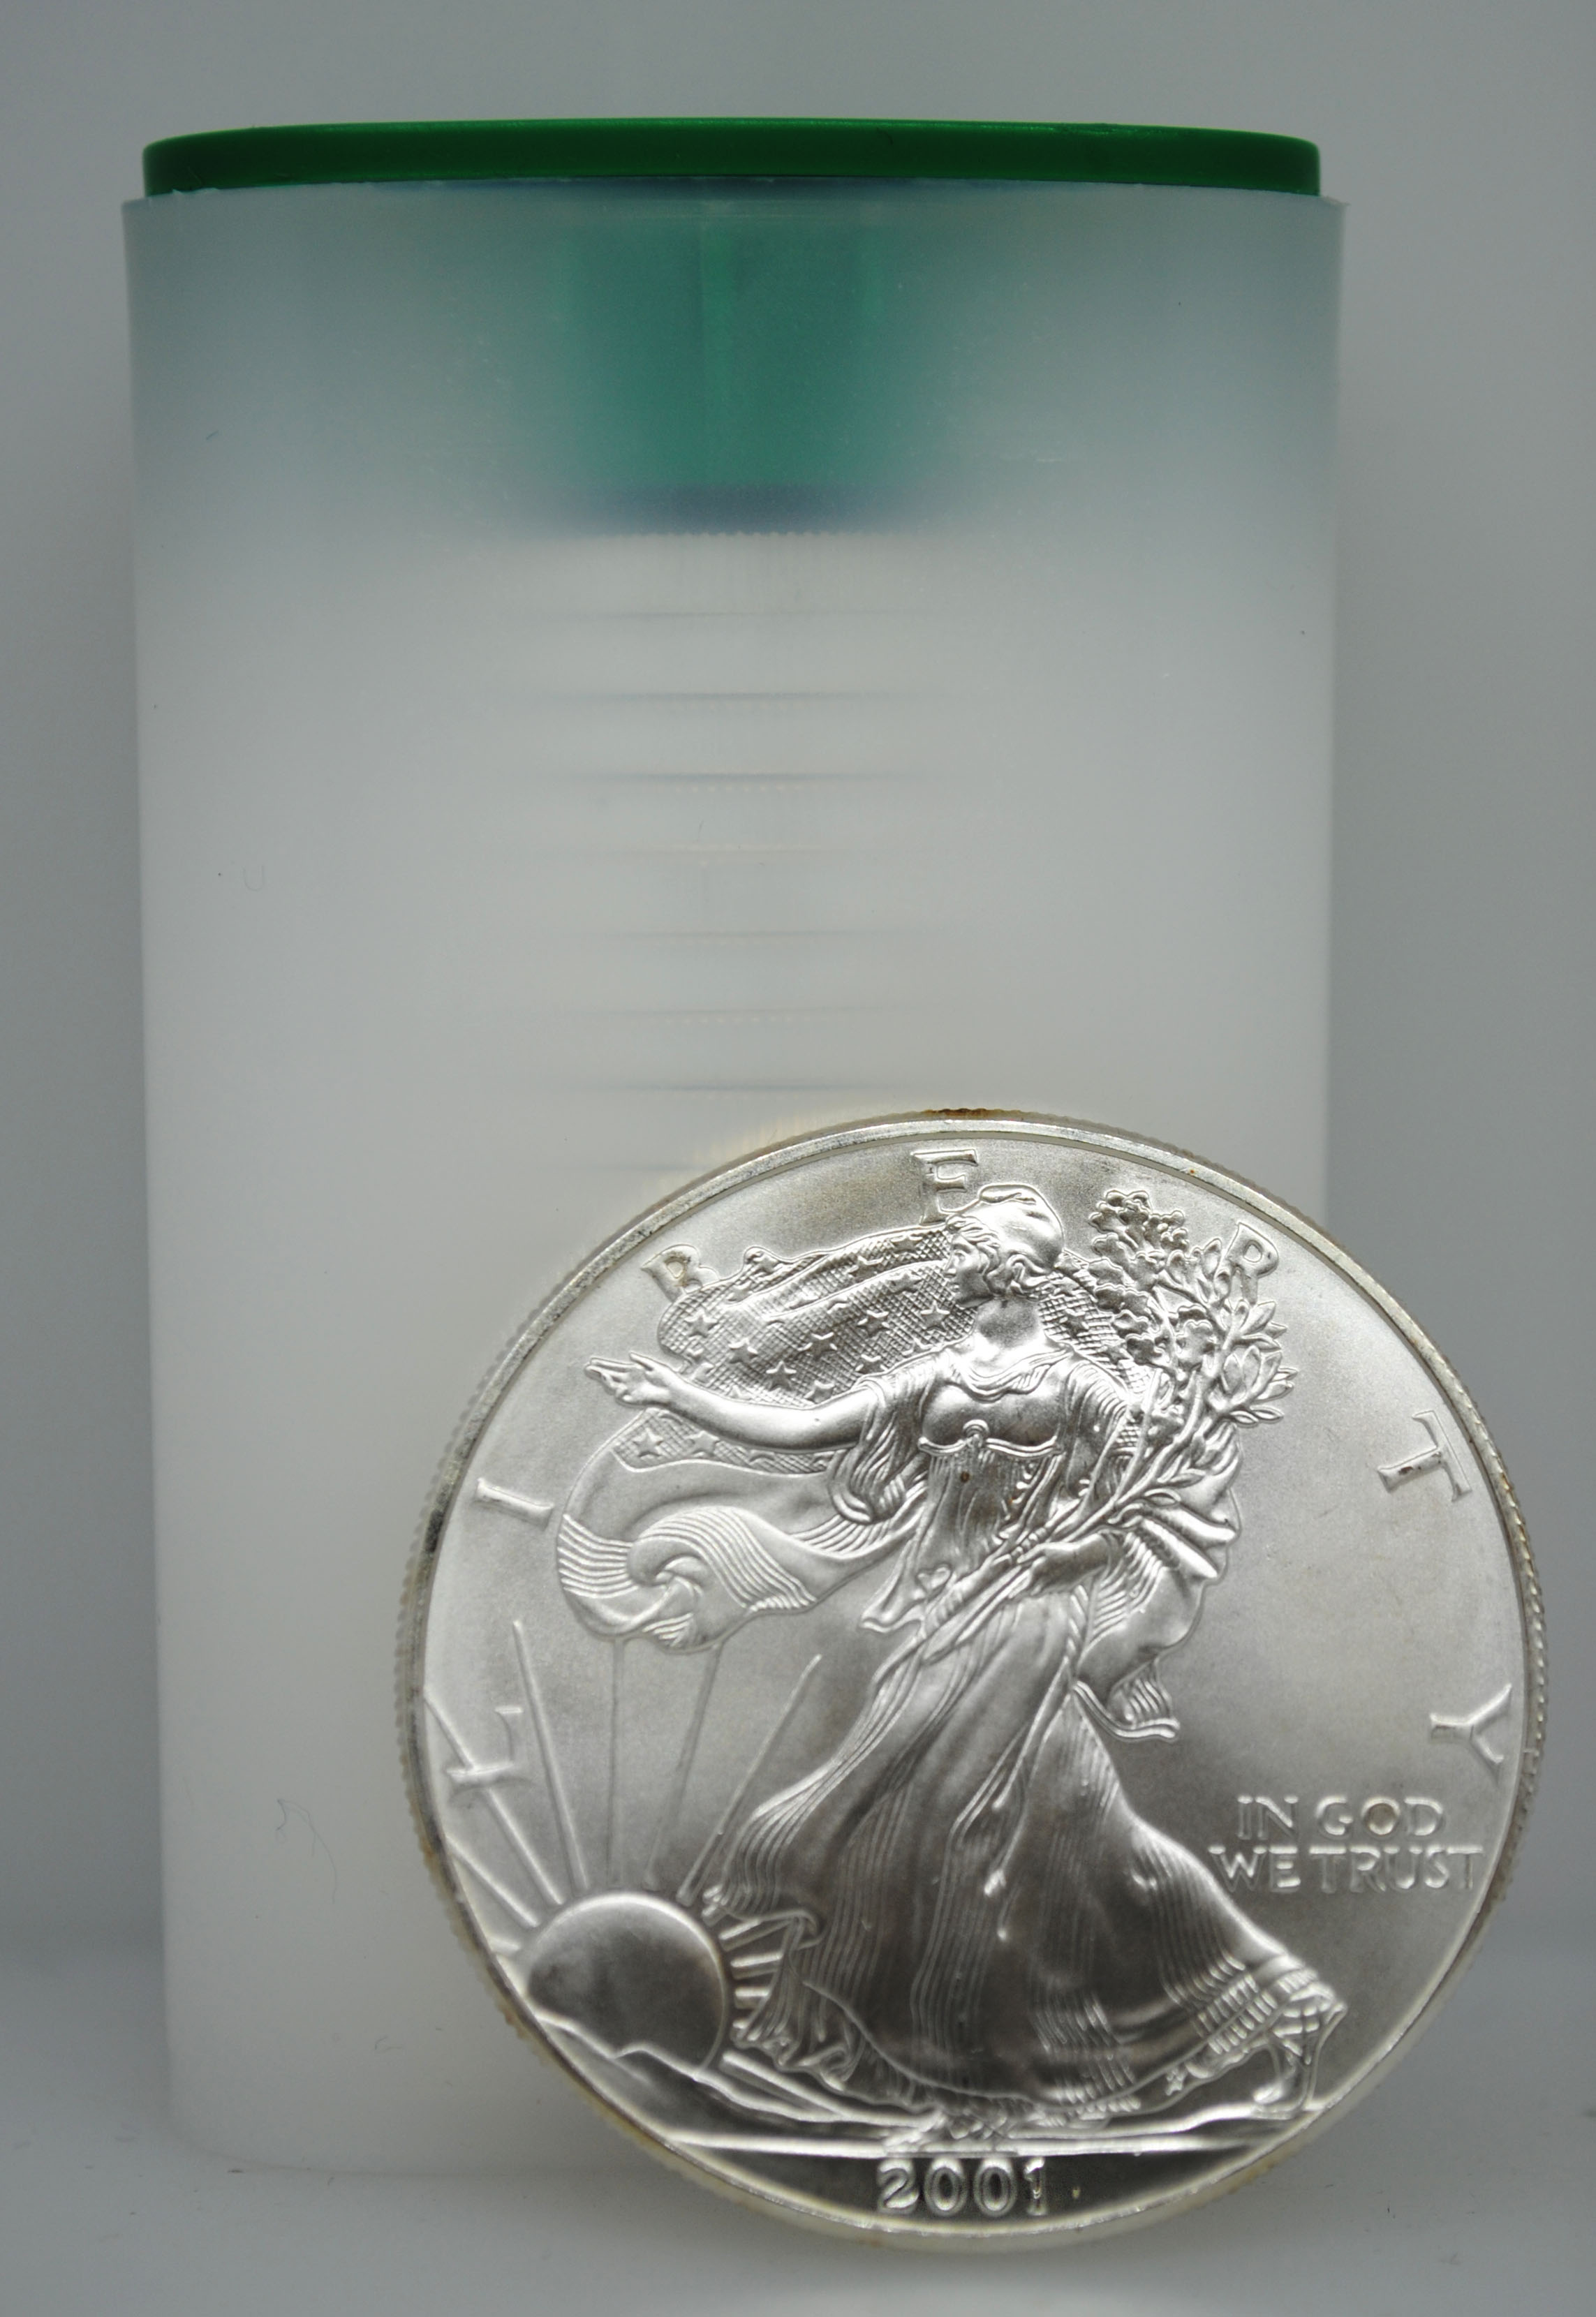 2001 Uncirculated Silver Eagles